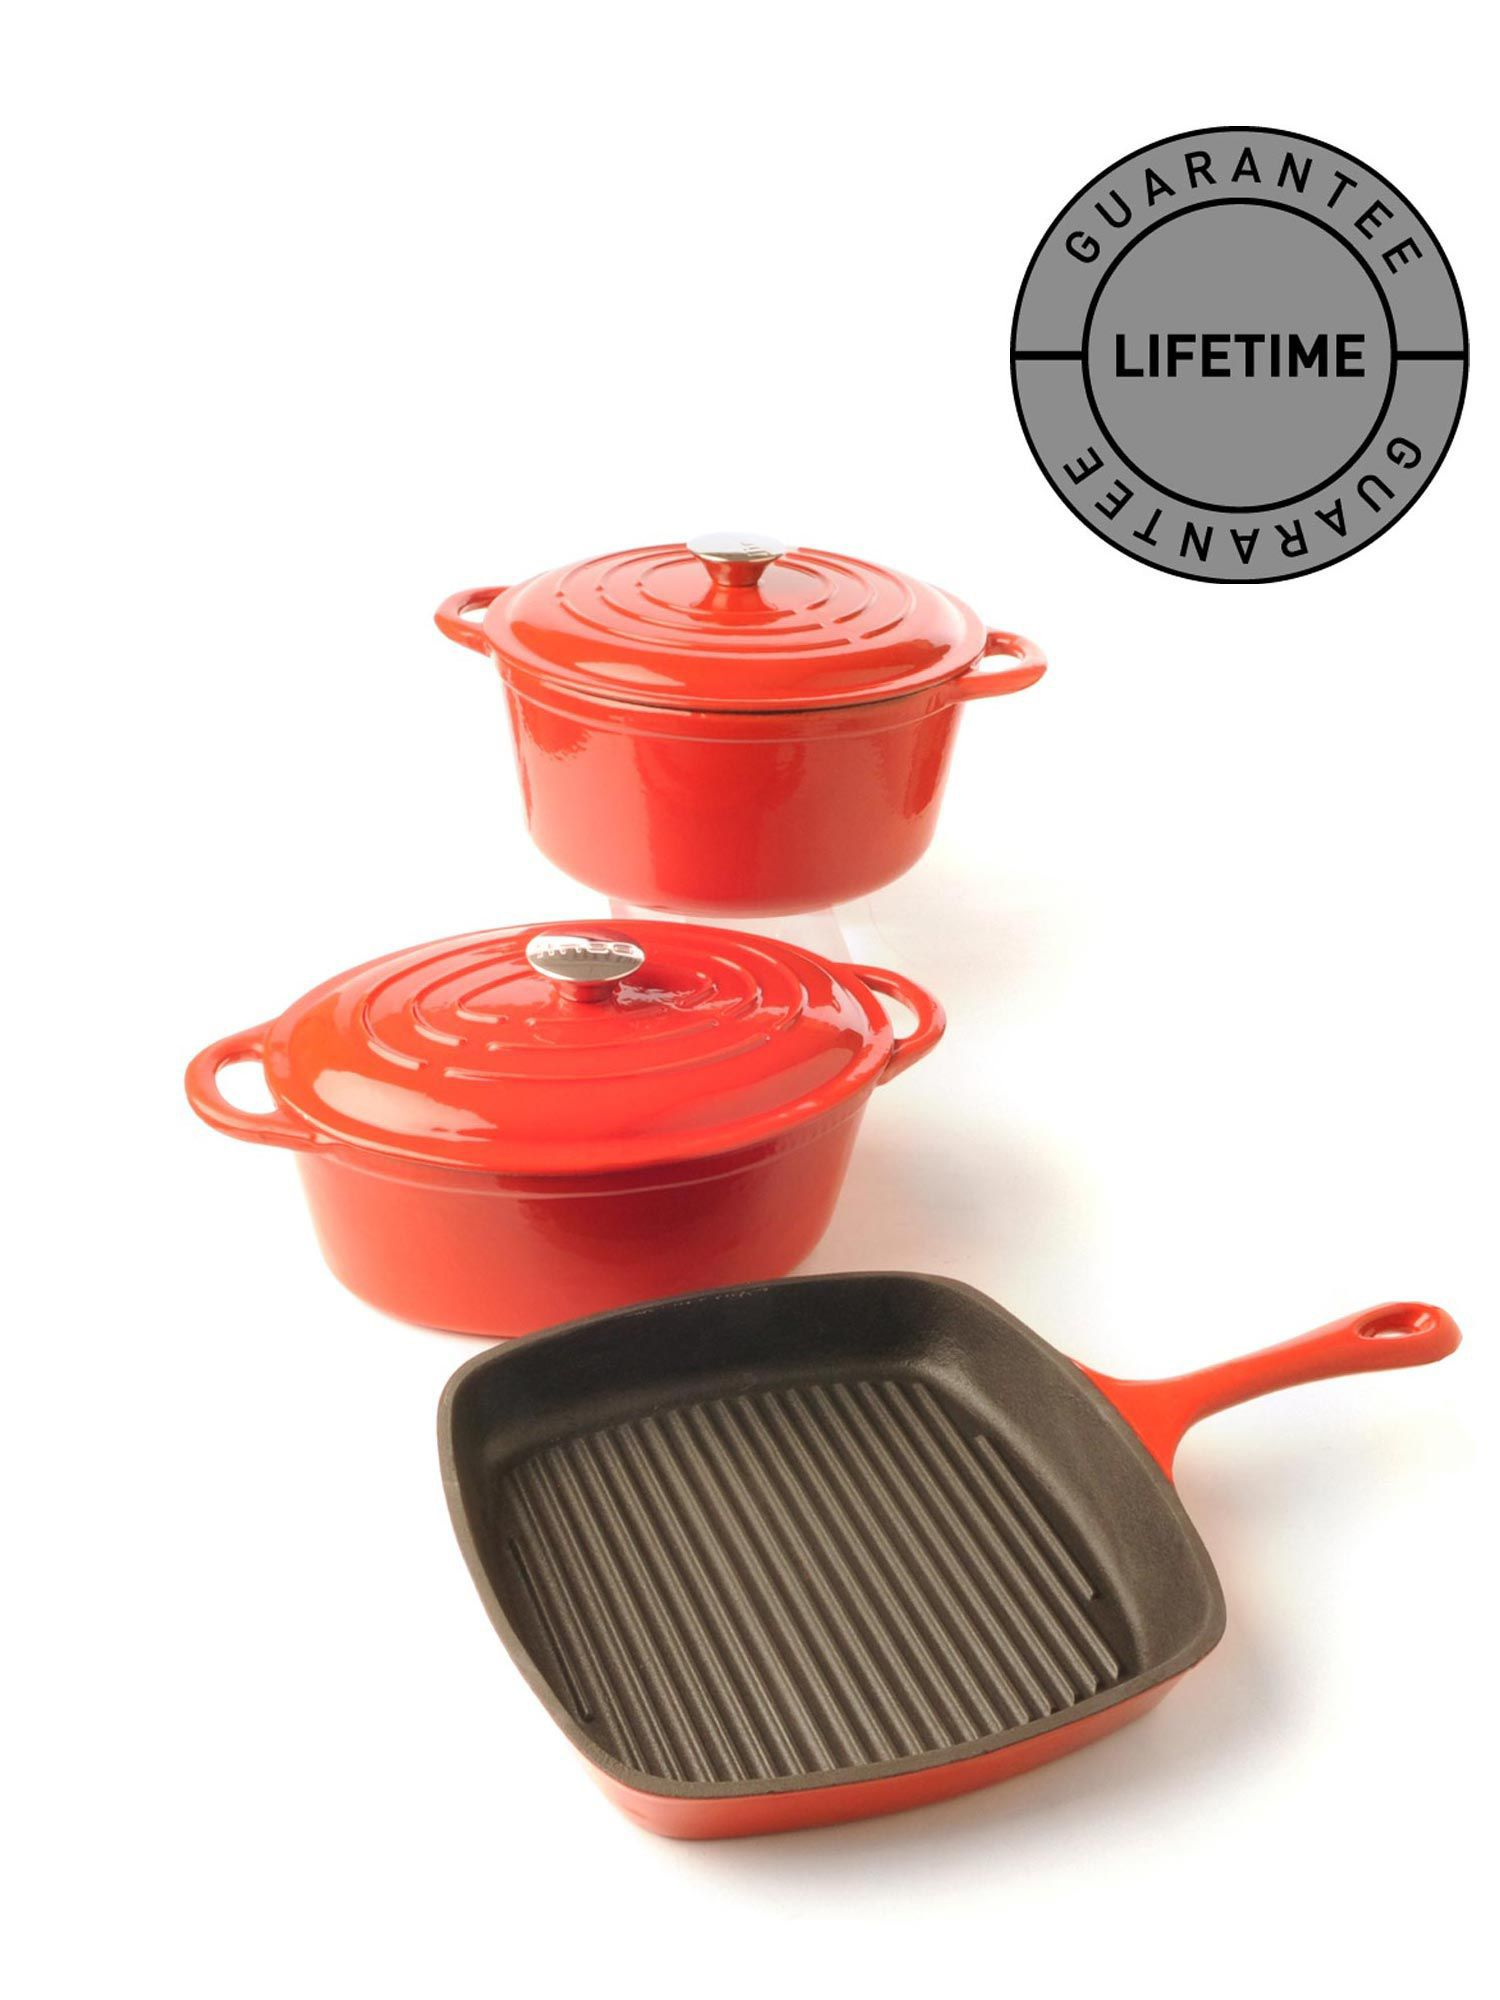 Cast iron cookware in red